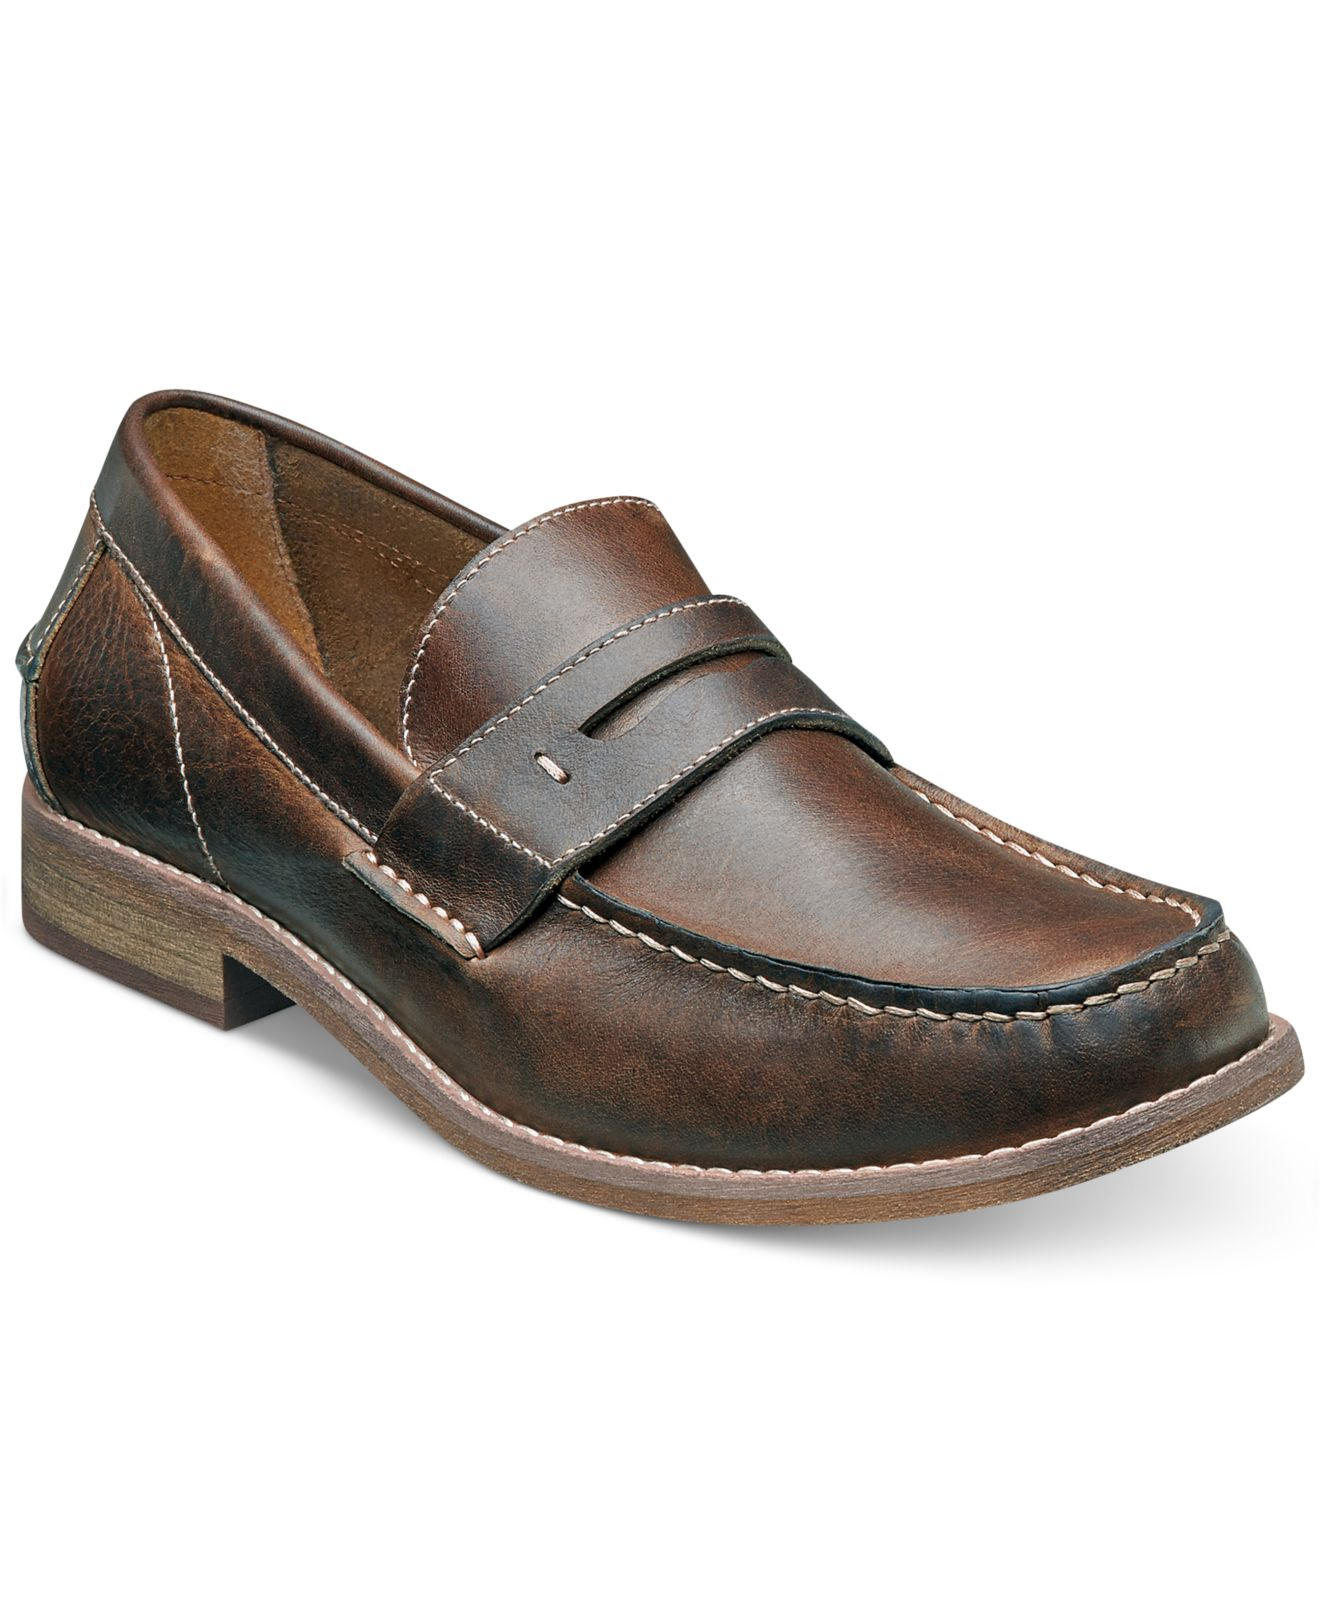 89f8e36f13a0 Gallery. Previously sold at  Macy s · Men s Penny Loafers ...